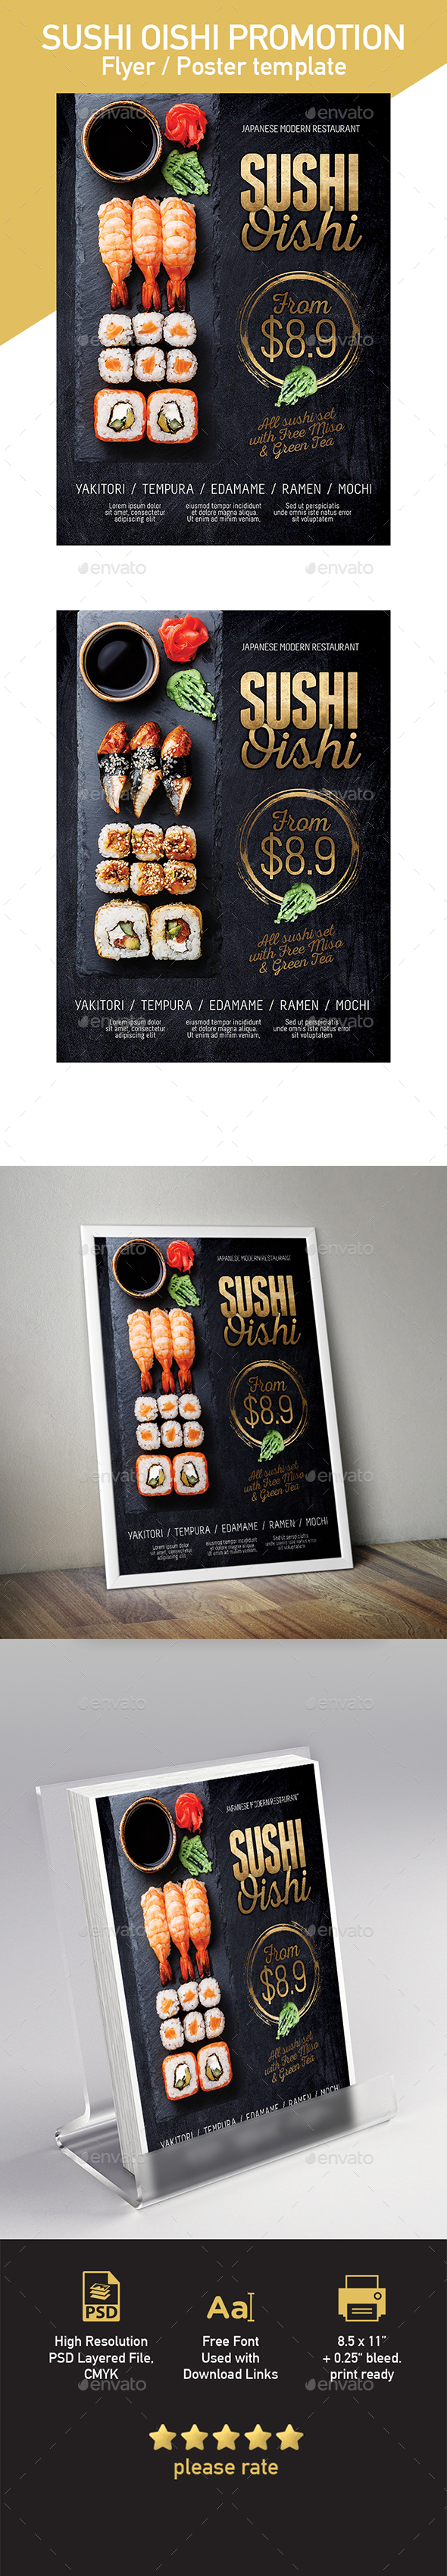 Japanese Sushi Flyer / Poster Template - Restaurant Flyers